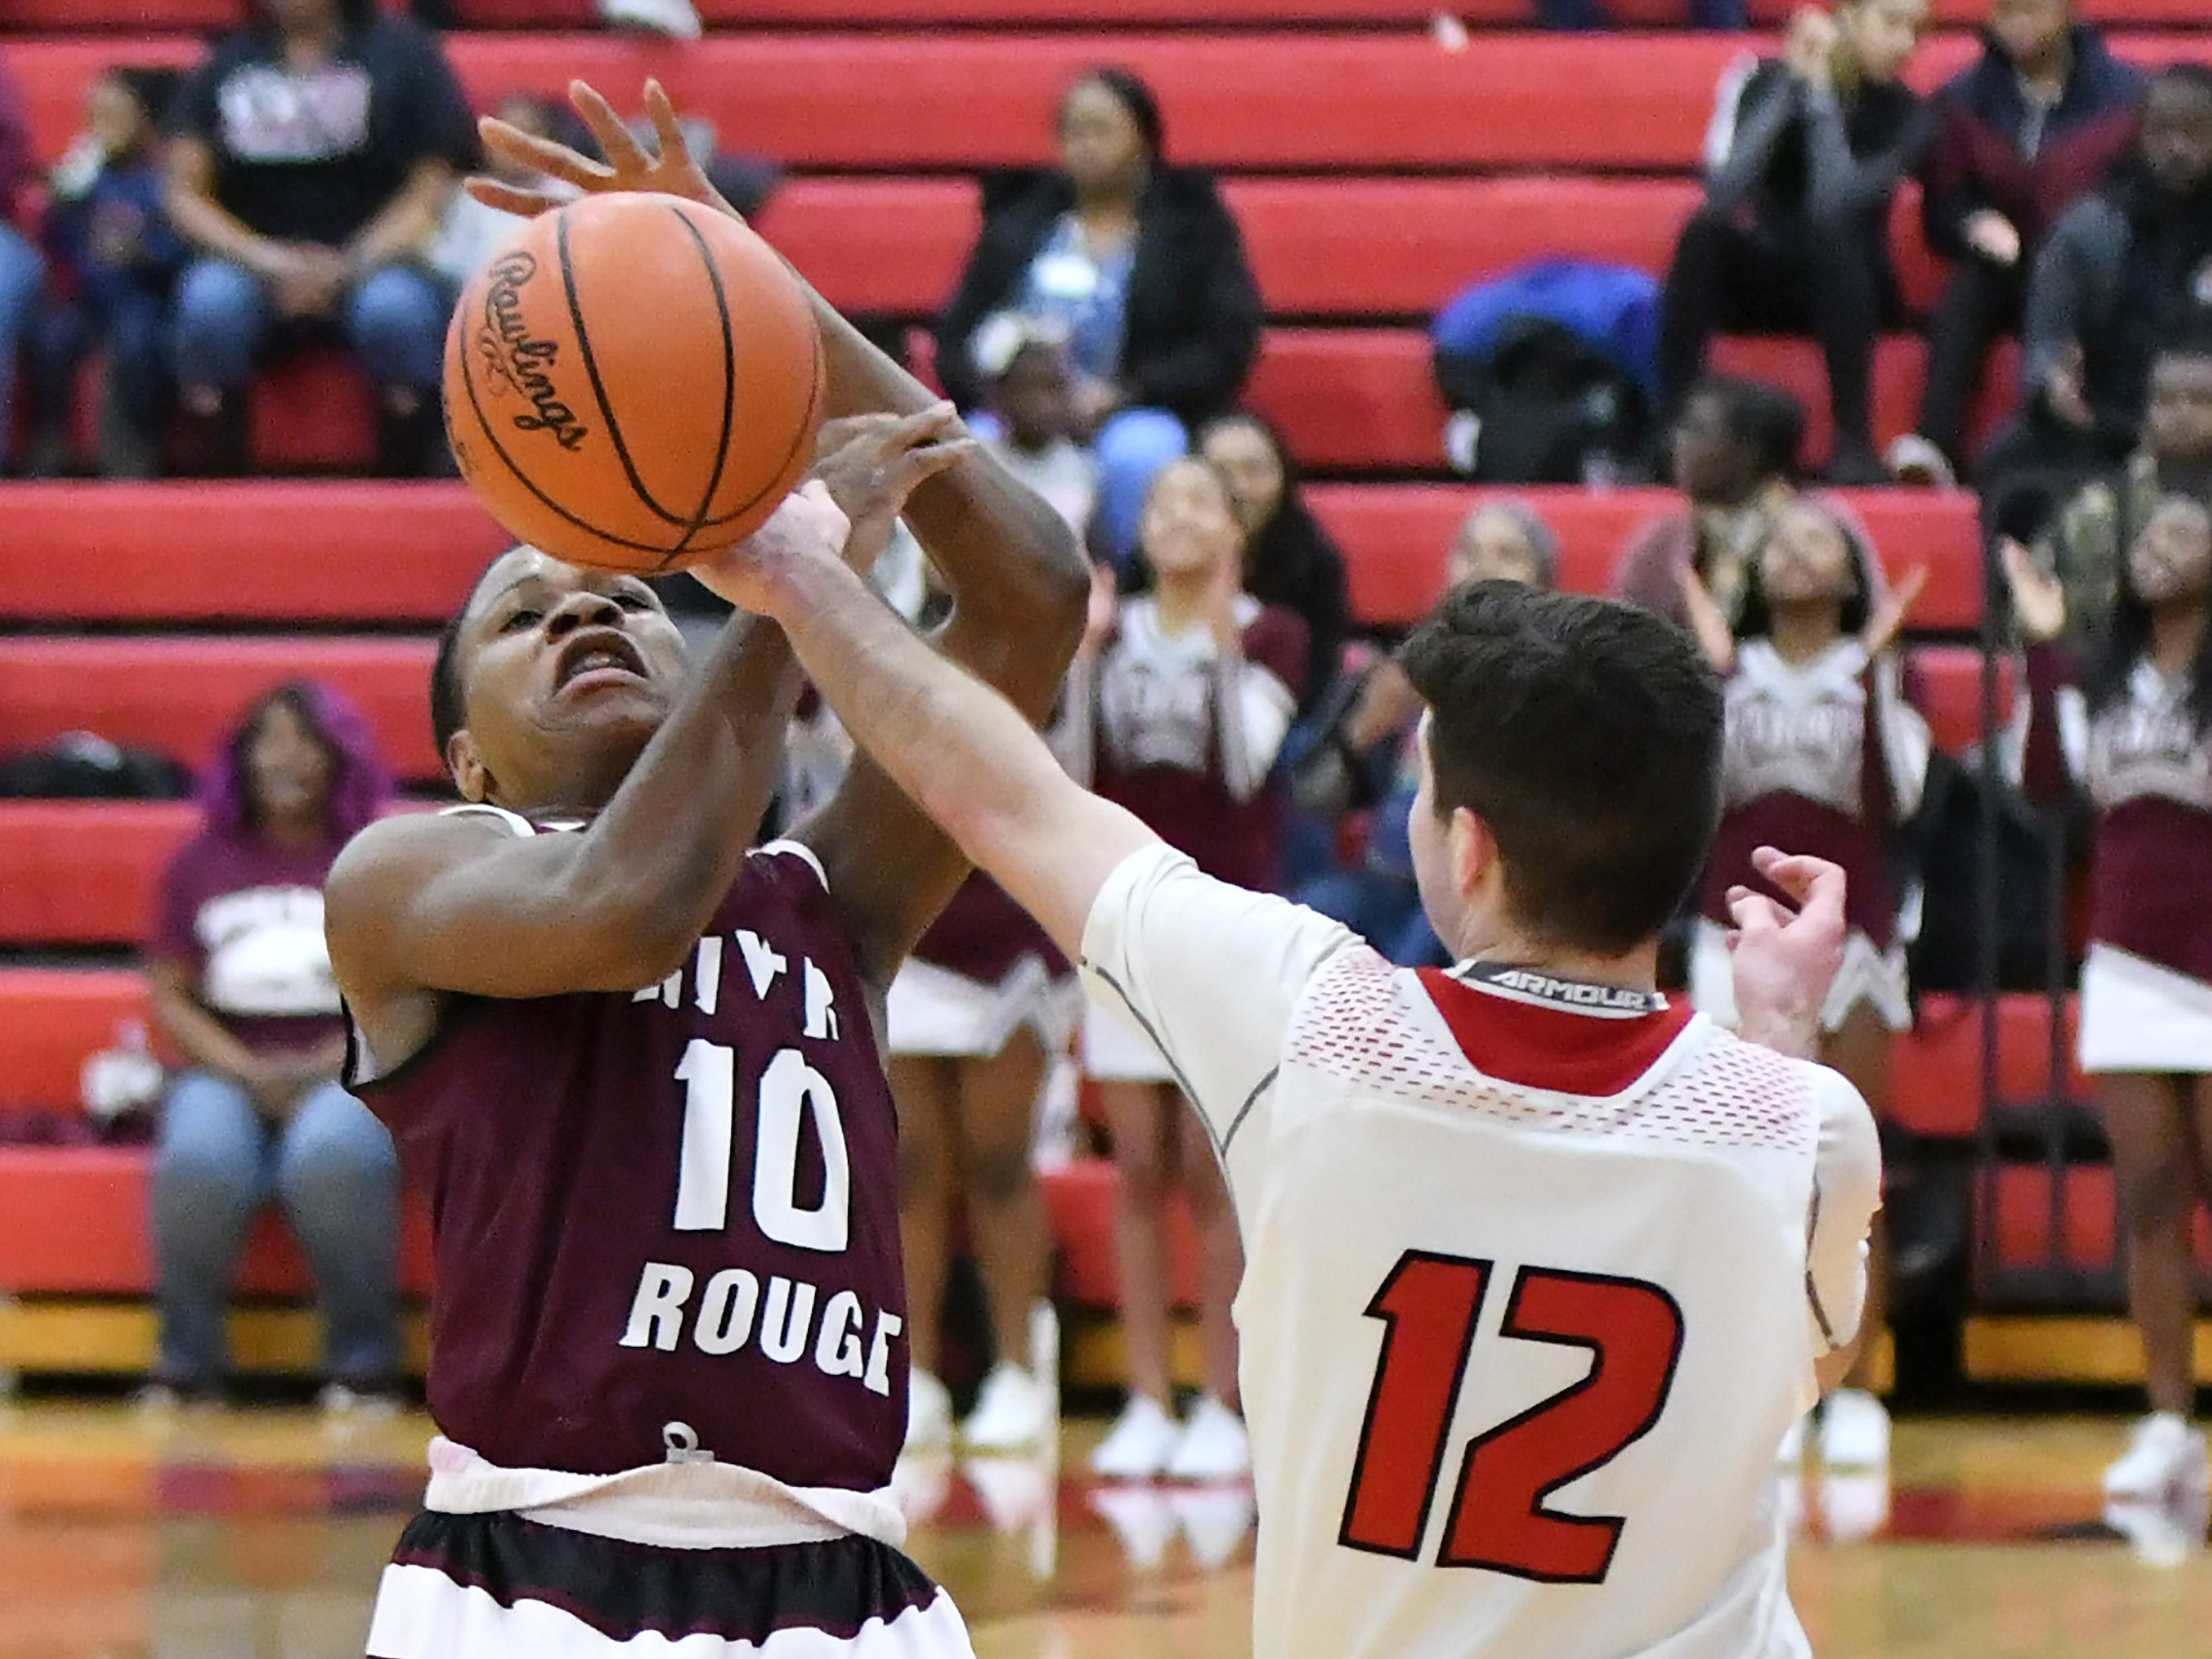 Divine Child's Jack Kenney (12) tries to steal the ball from River Rouge's Bralin Toney (10) in the first half.